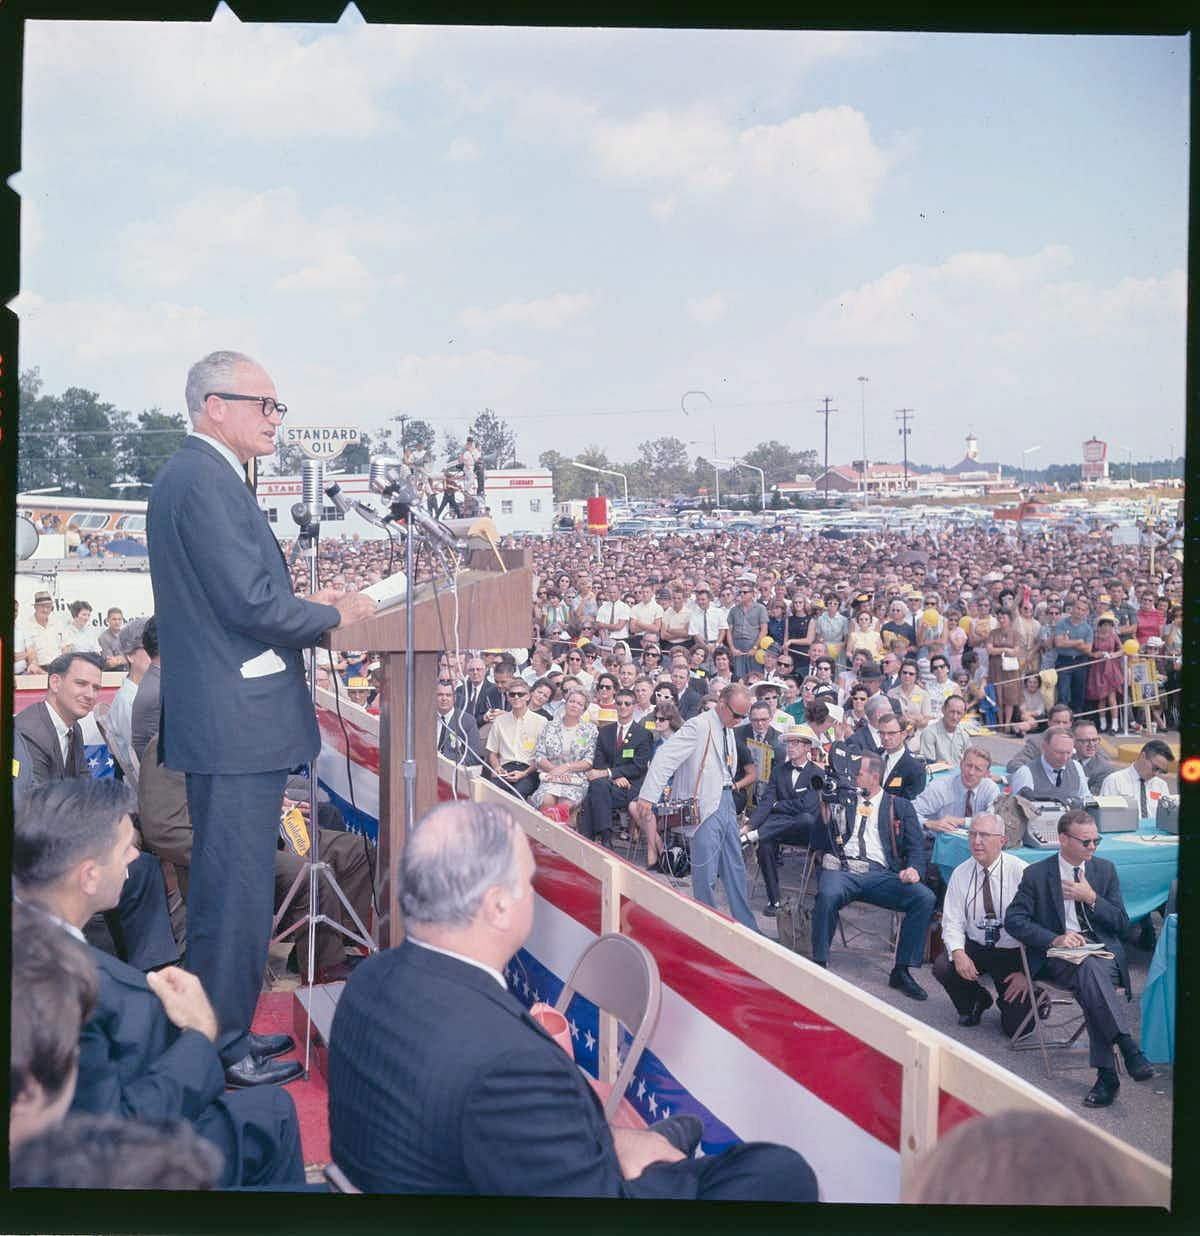 In 1964, GOP presidential candidate Barry Goldwater spoke of 'the growing menace in our country… to personal safety, to life, to limb and property